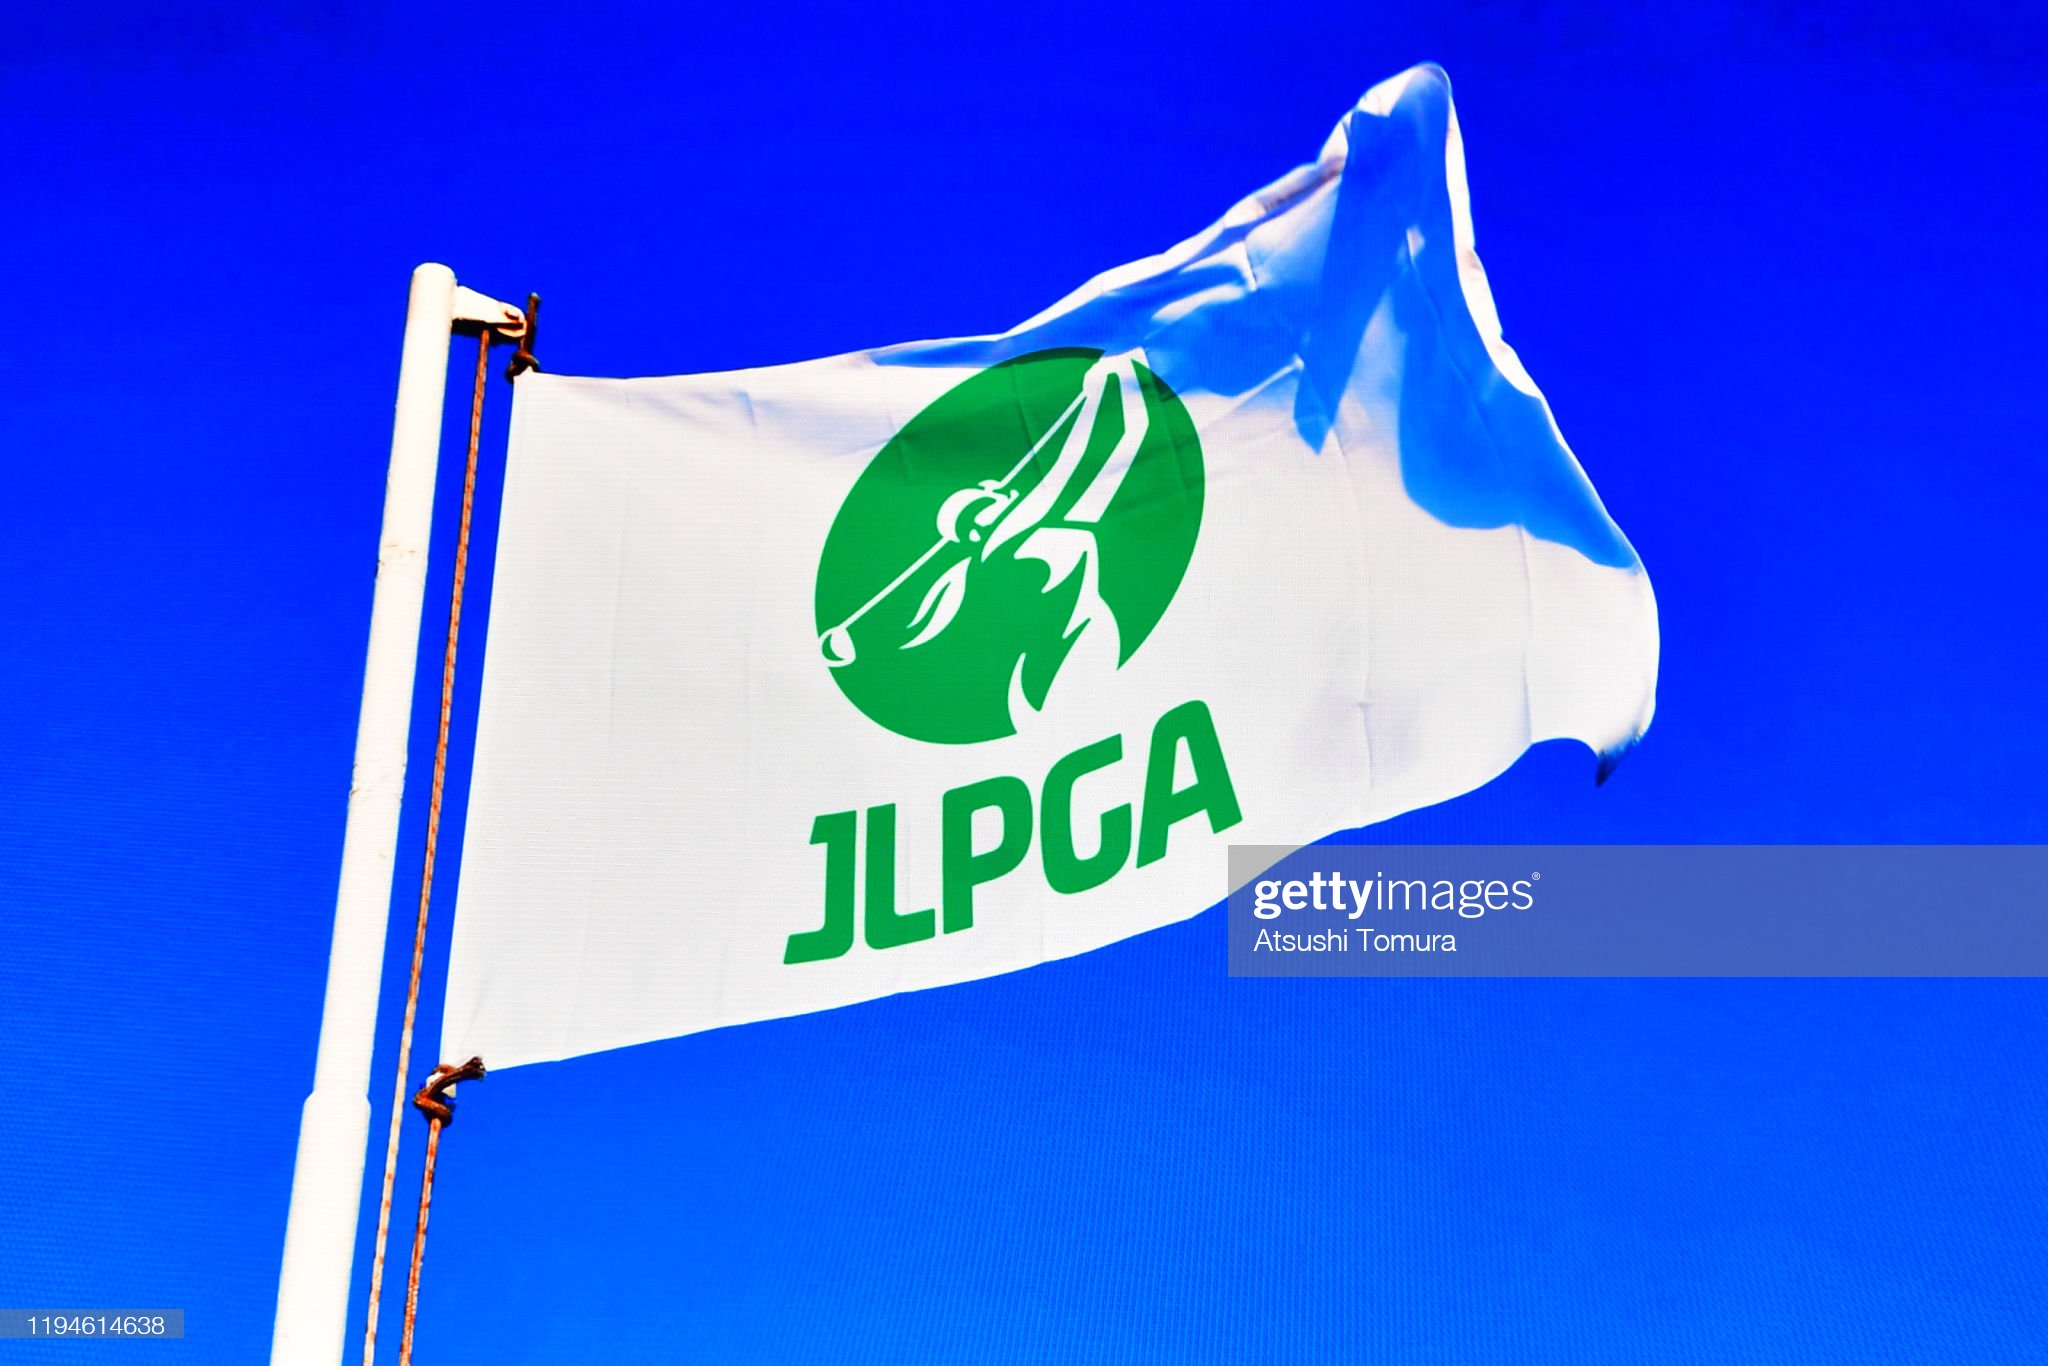 https://media.gettyimages.com/photos/the-jlpga-logo-is-displayed-during-the-lpga-awards-on-december-18-in-picture-id1194614638?s=2048x2048